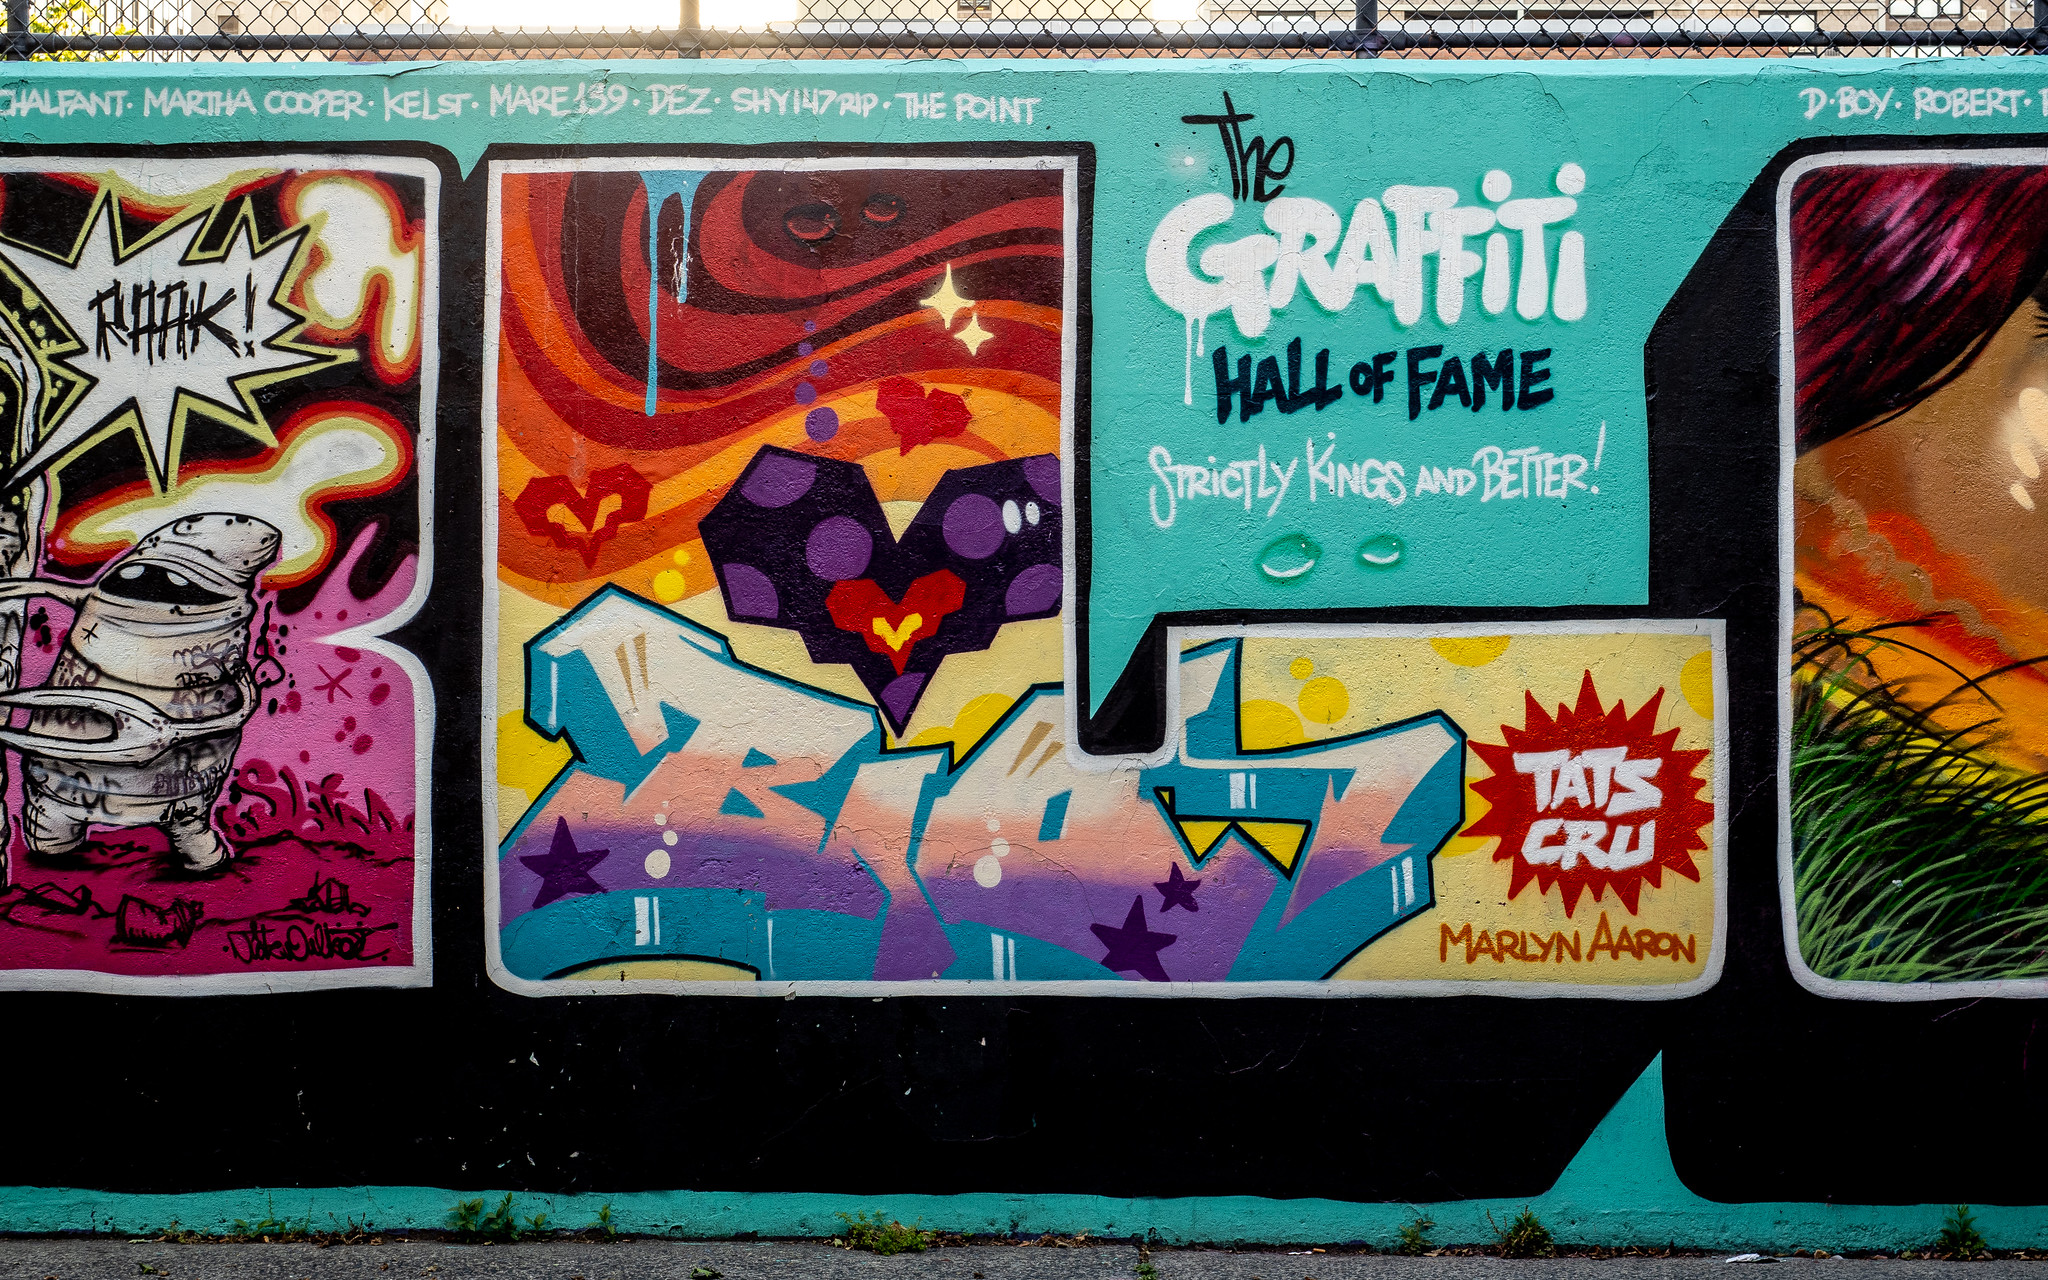 Graffiti Hall of Fame: What This Worldwide Gallery of Street Art is All About